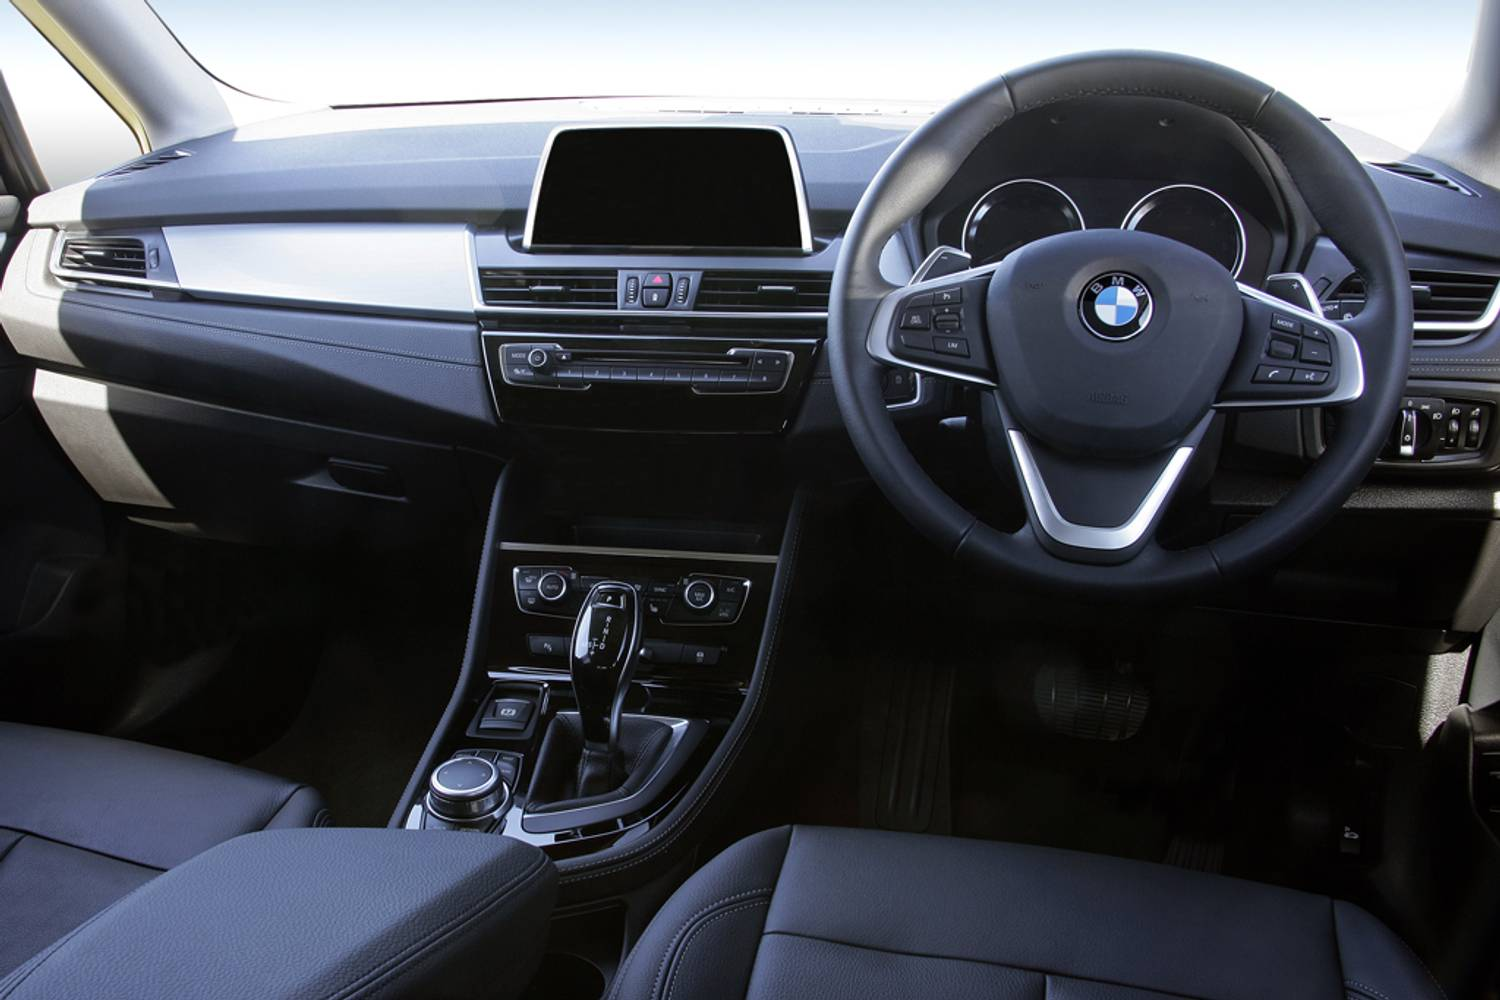 BMW 2 Series Active Tourer 5dr interior